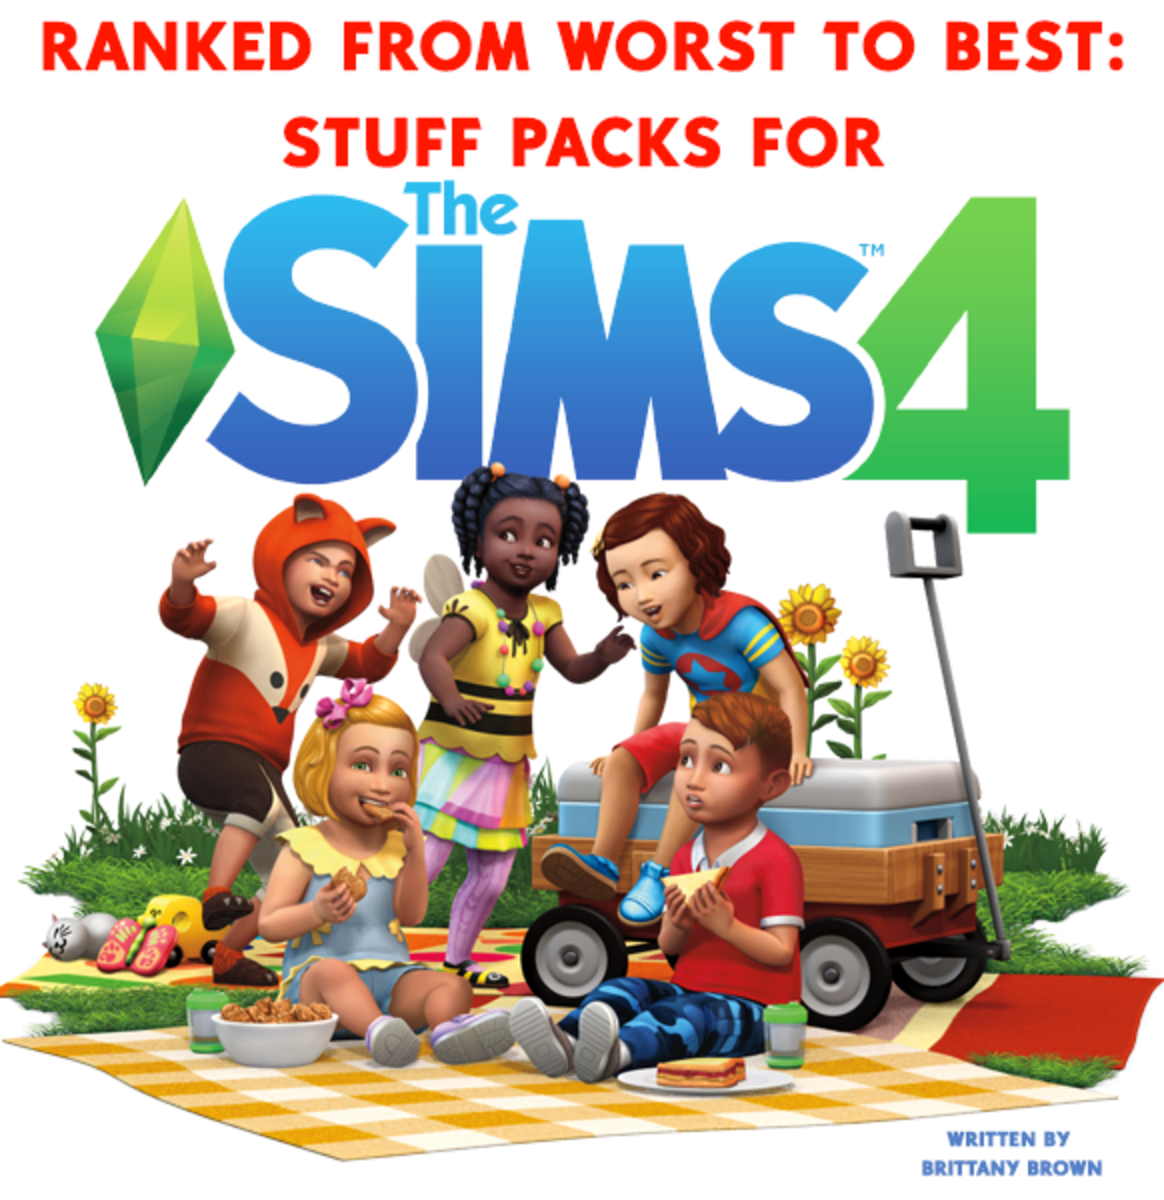 The Best and Worst Stuff Packs for The Sims 4!